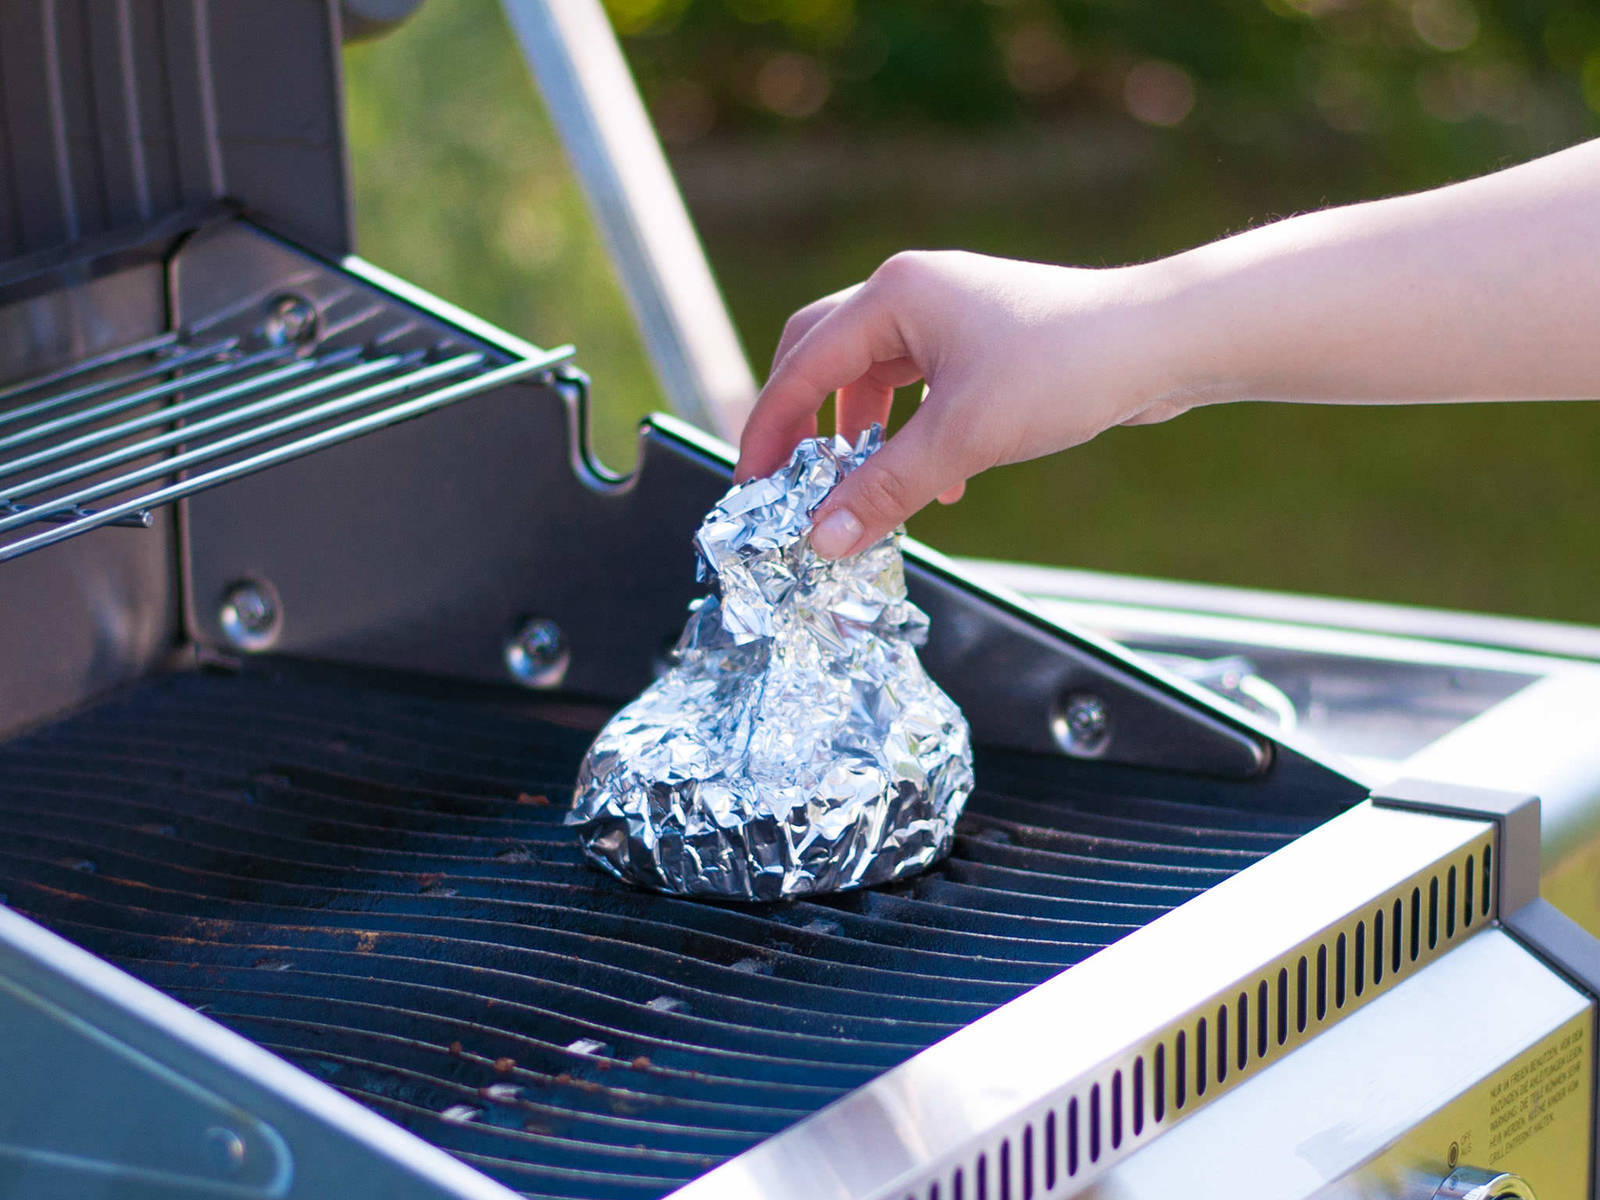 Wrap the foil around the cheese to form a firm parcel and place it onto the grill. Grill for approx. 15 – 20 min. until the cheese is soft.